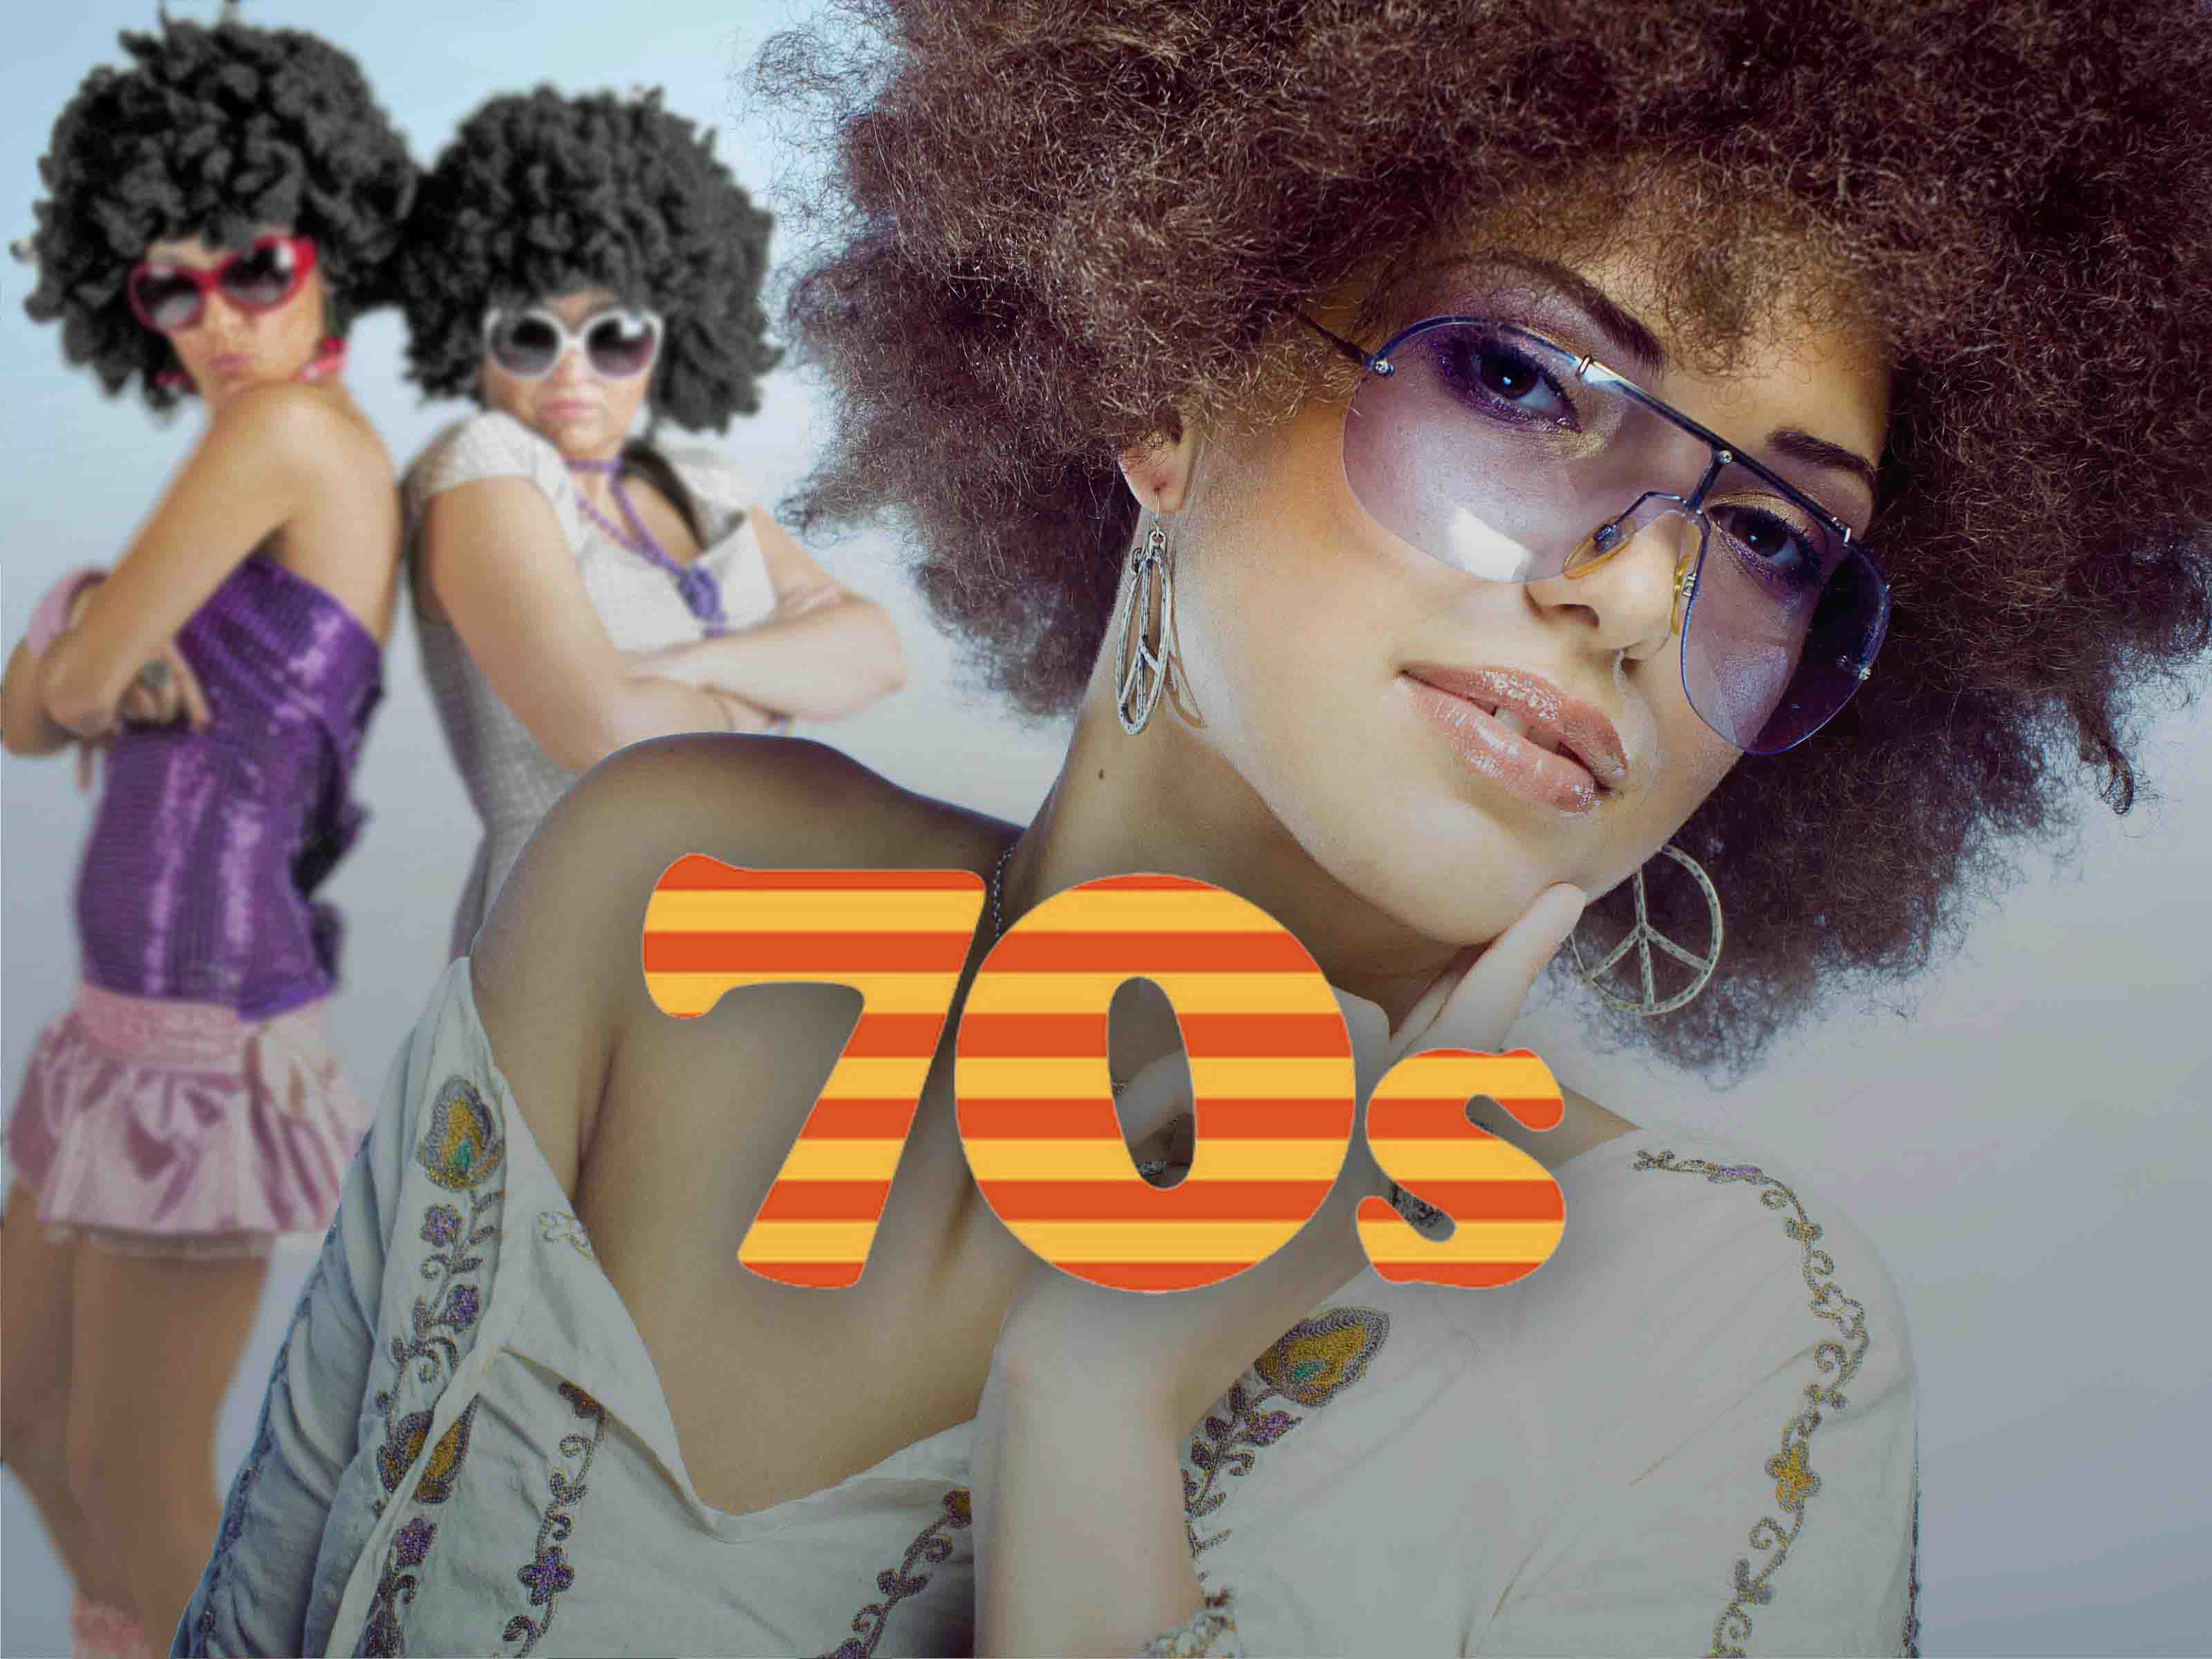 Hen Party Themes - 70s